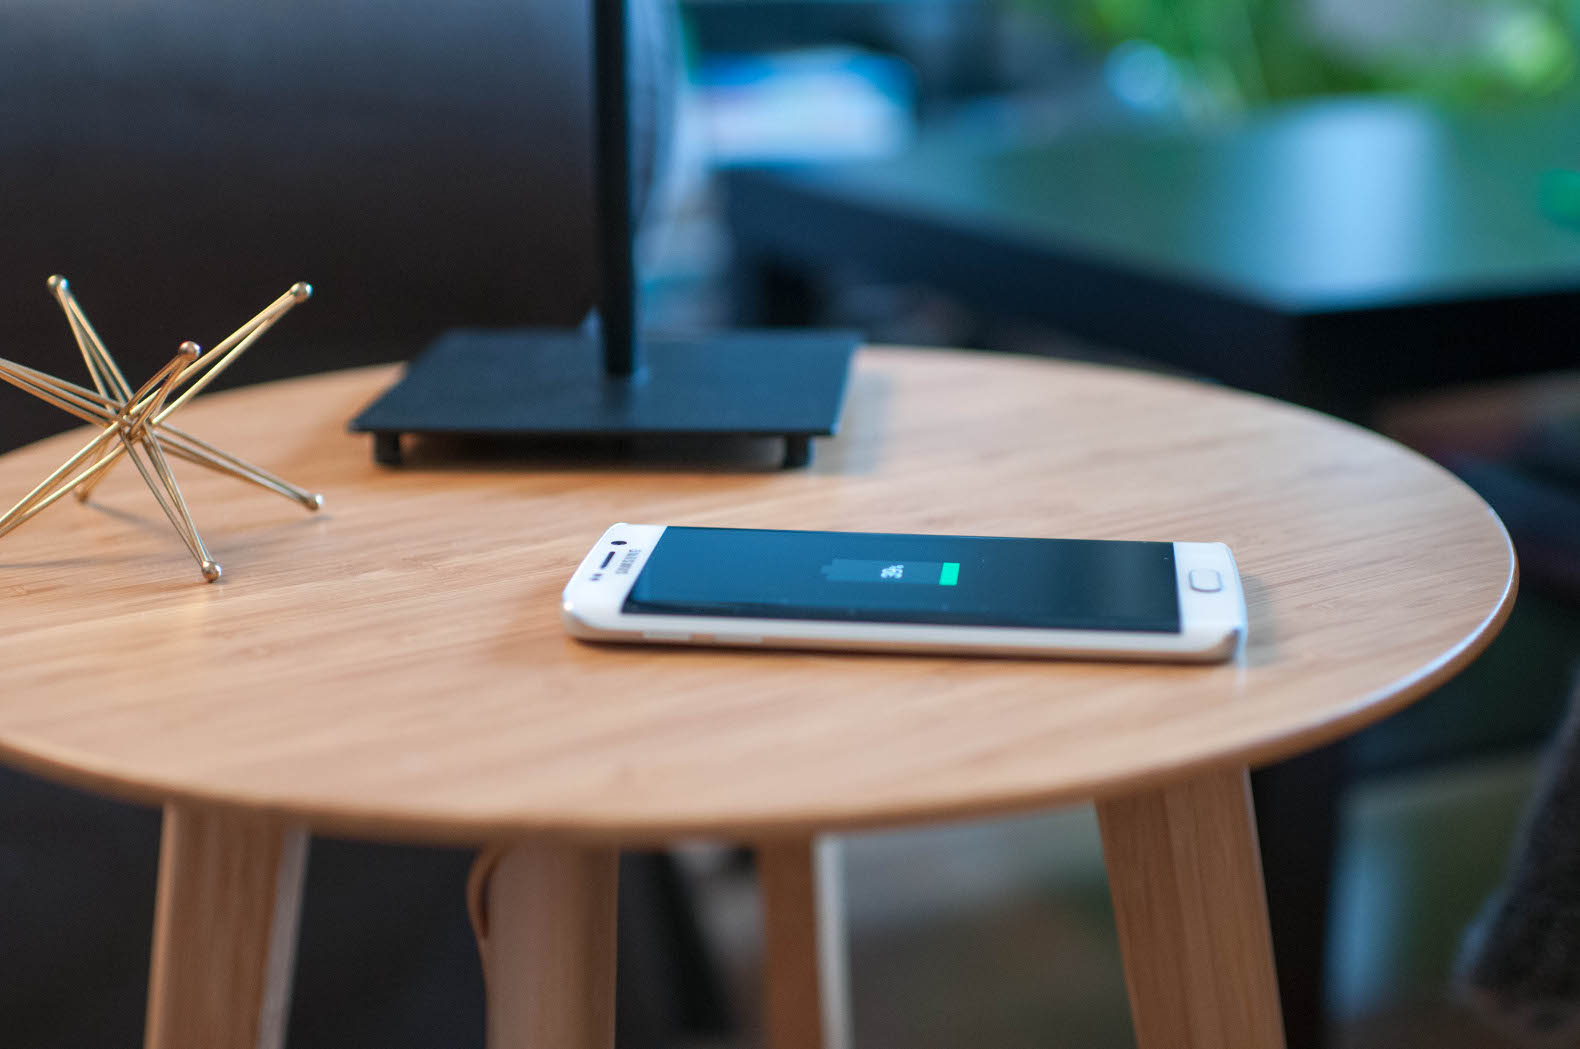 Furniqi S Stylish Furniture Will Wirelessly Charge Your